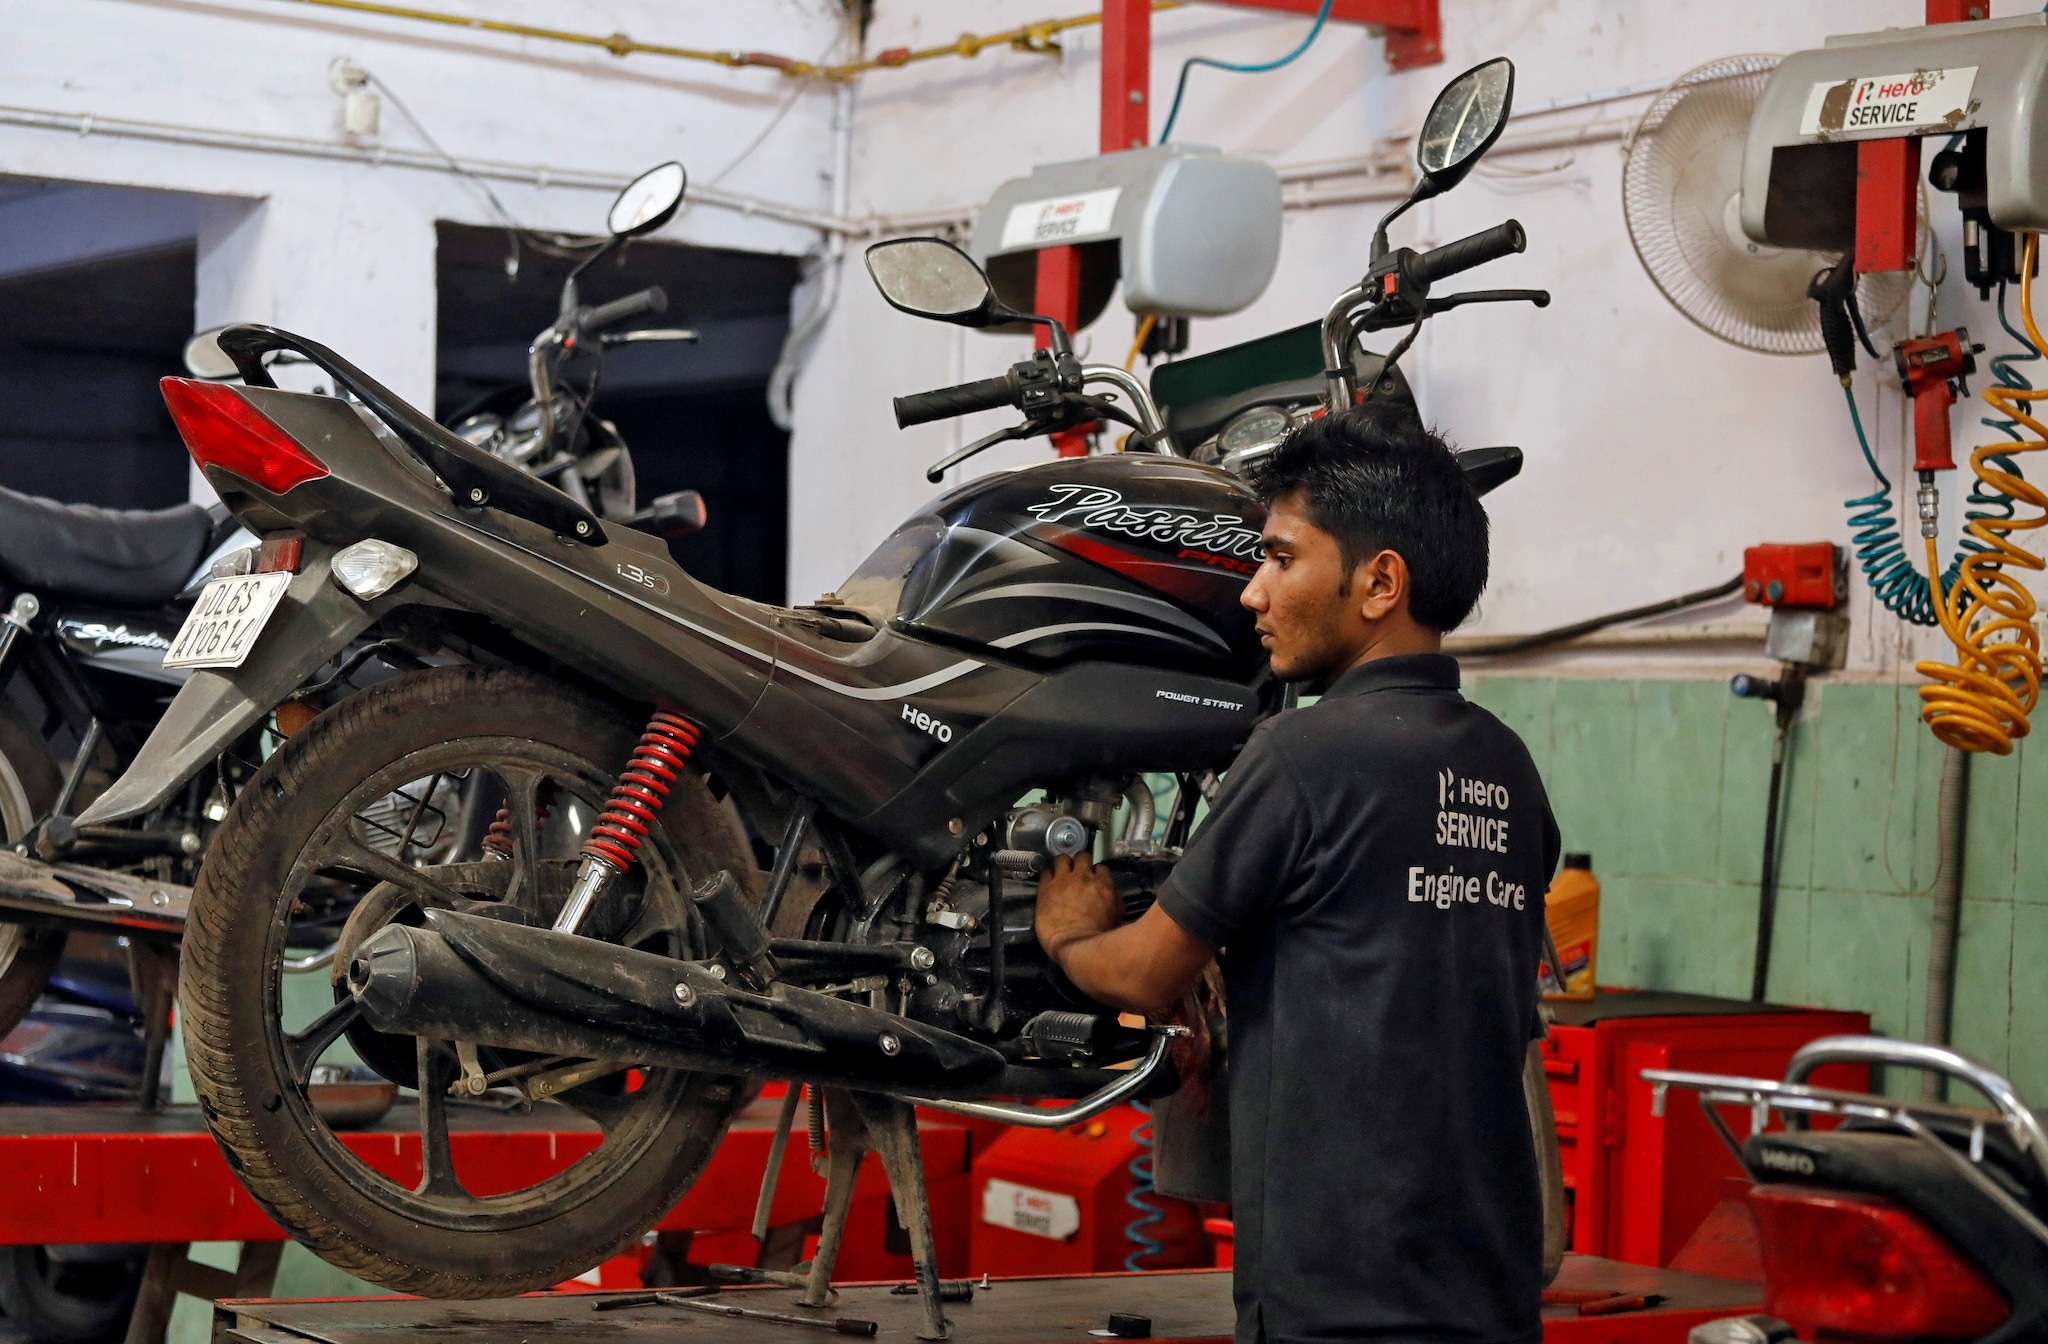 Hero MotoCorp fell 6.2 percent to hit its 52-week low of Rs 2,255 per share on the NSE ahead of its Q1 earnings. (Image: Reuters)